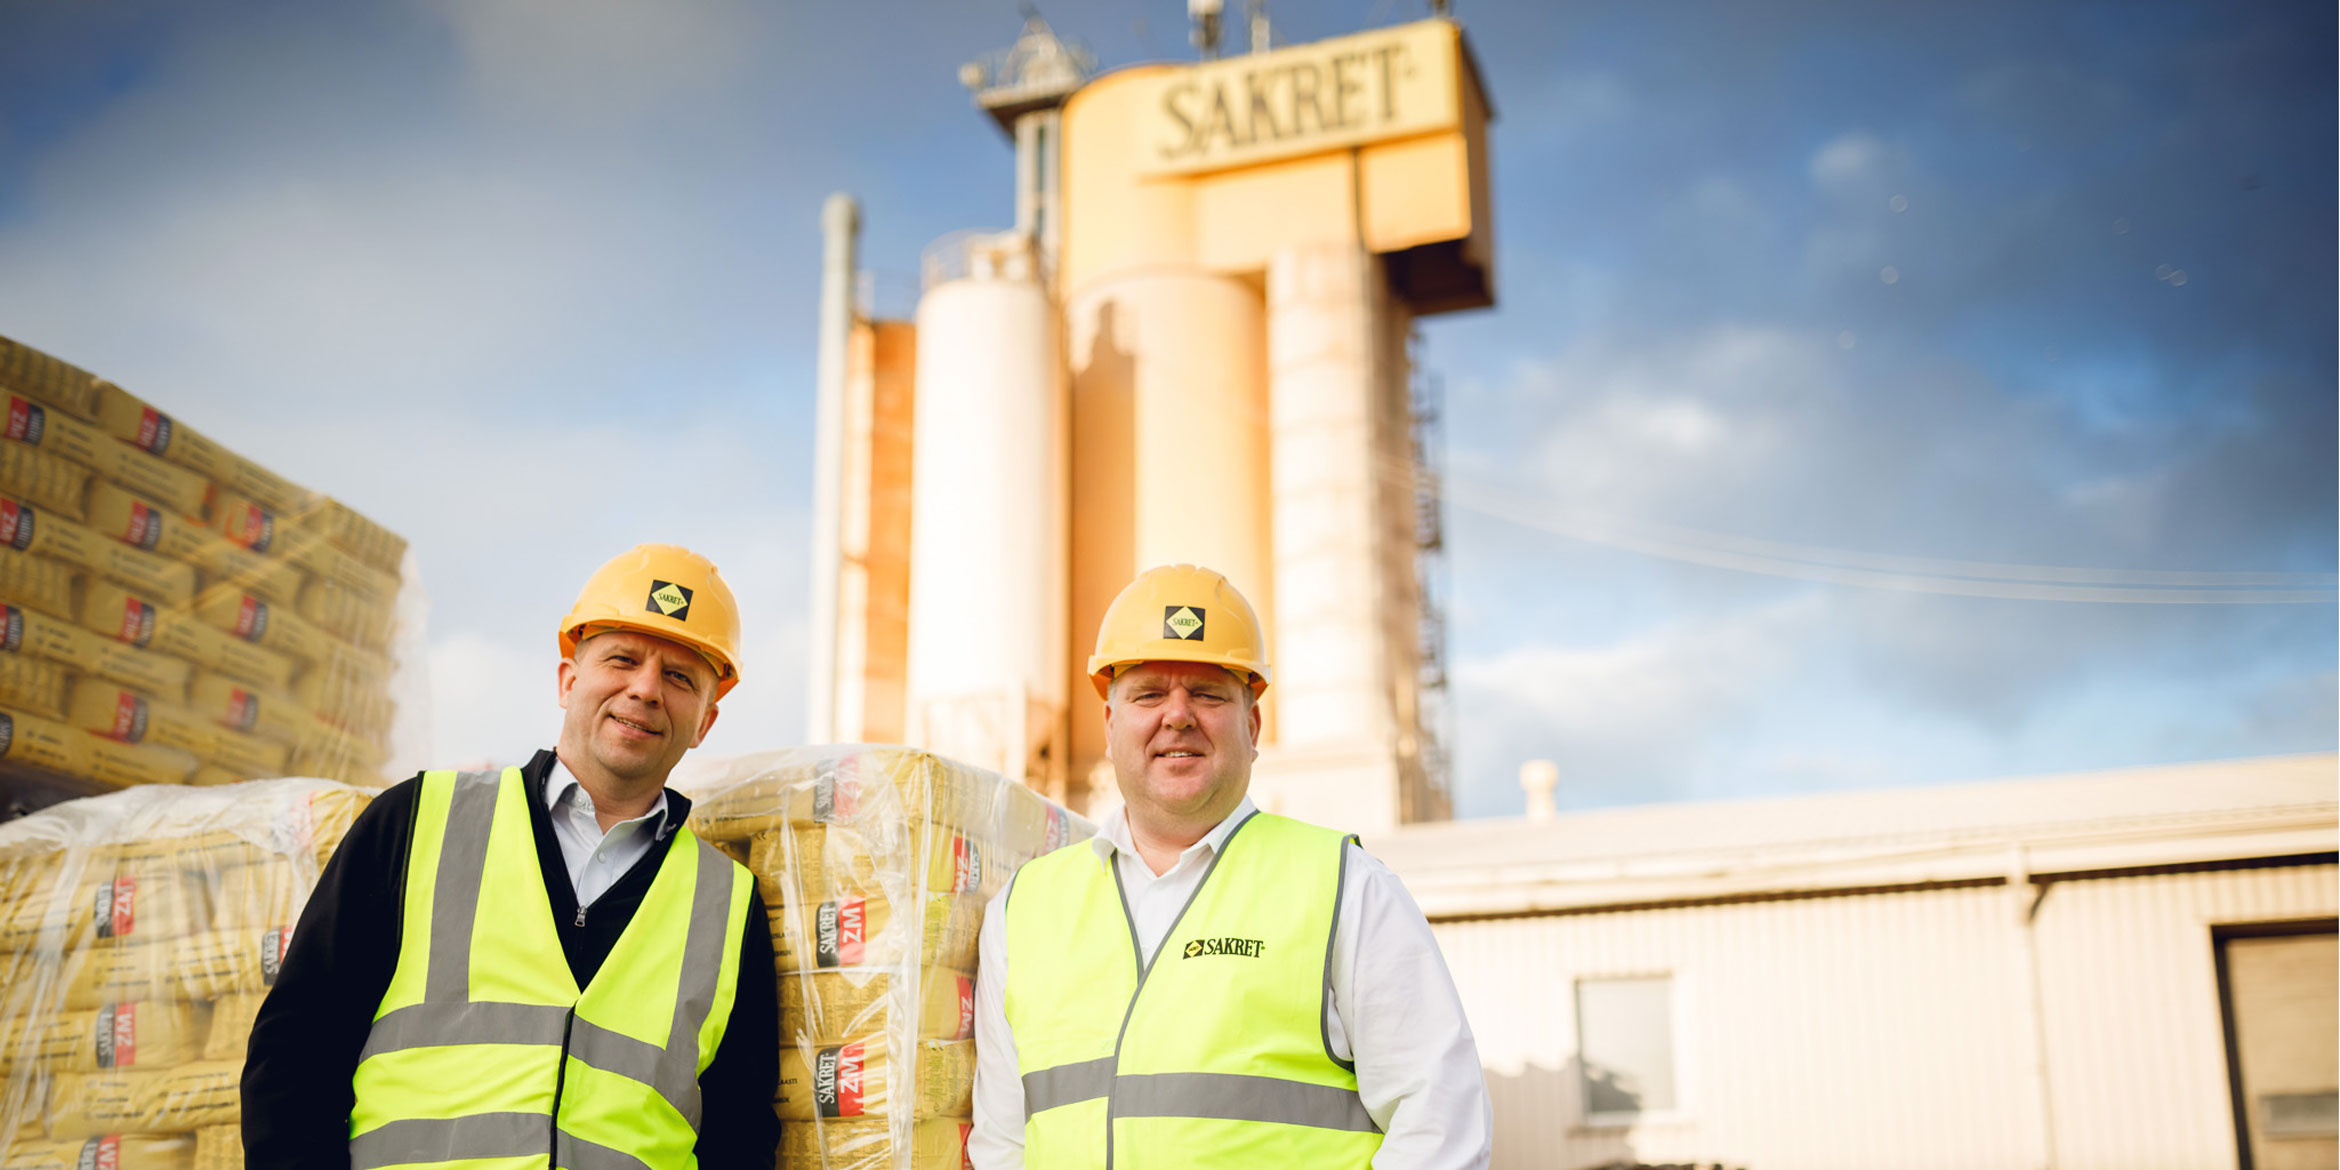 CEO's of SAKRET SIA in front of SAKRET bags and plant.